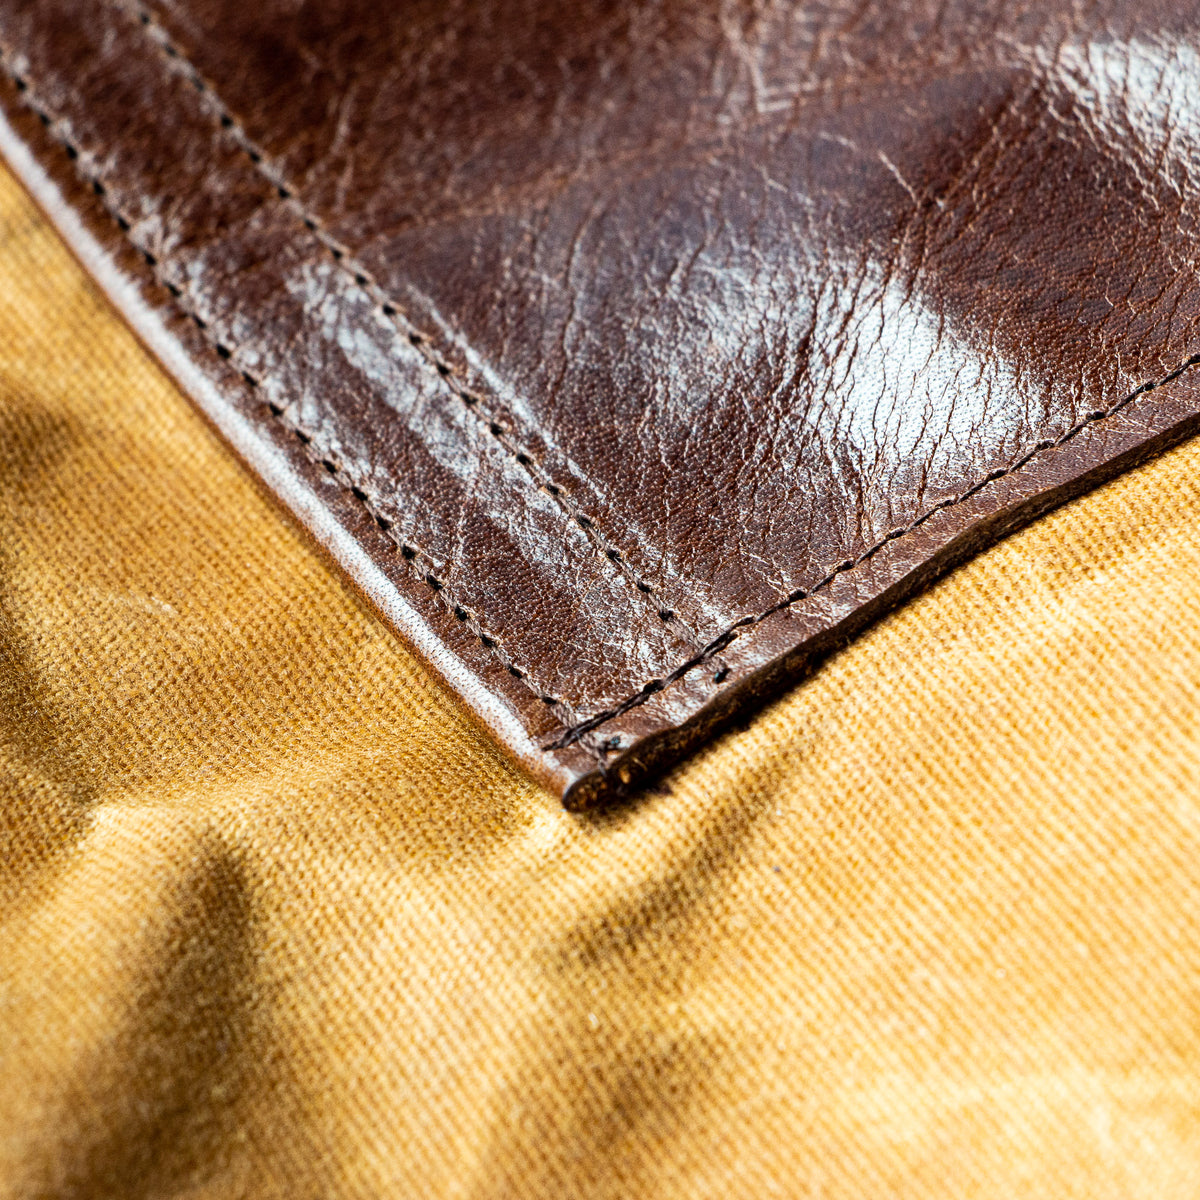 Cognac Brown Leather Detail - Masson - Large Tote Bag / Backpack - Cowhide & Waxed Cotton Canvas - Sold by Chic & Basta